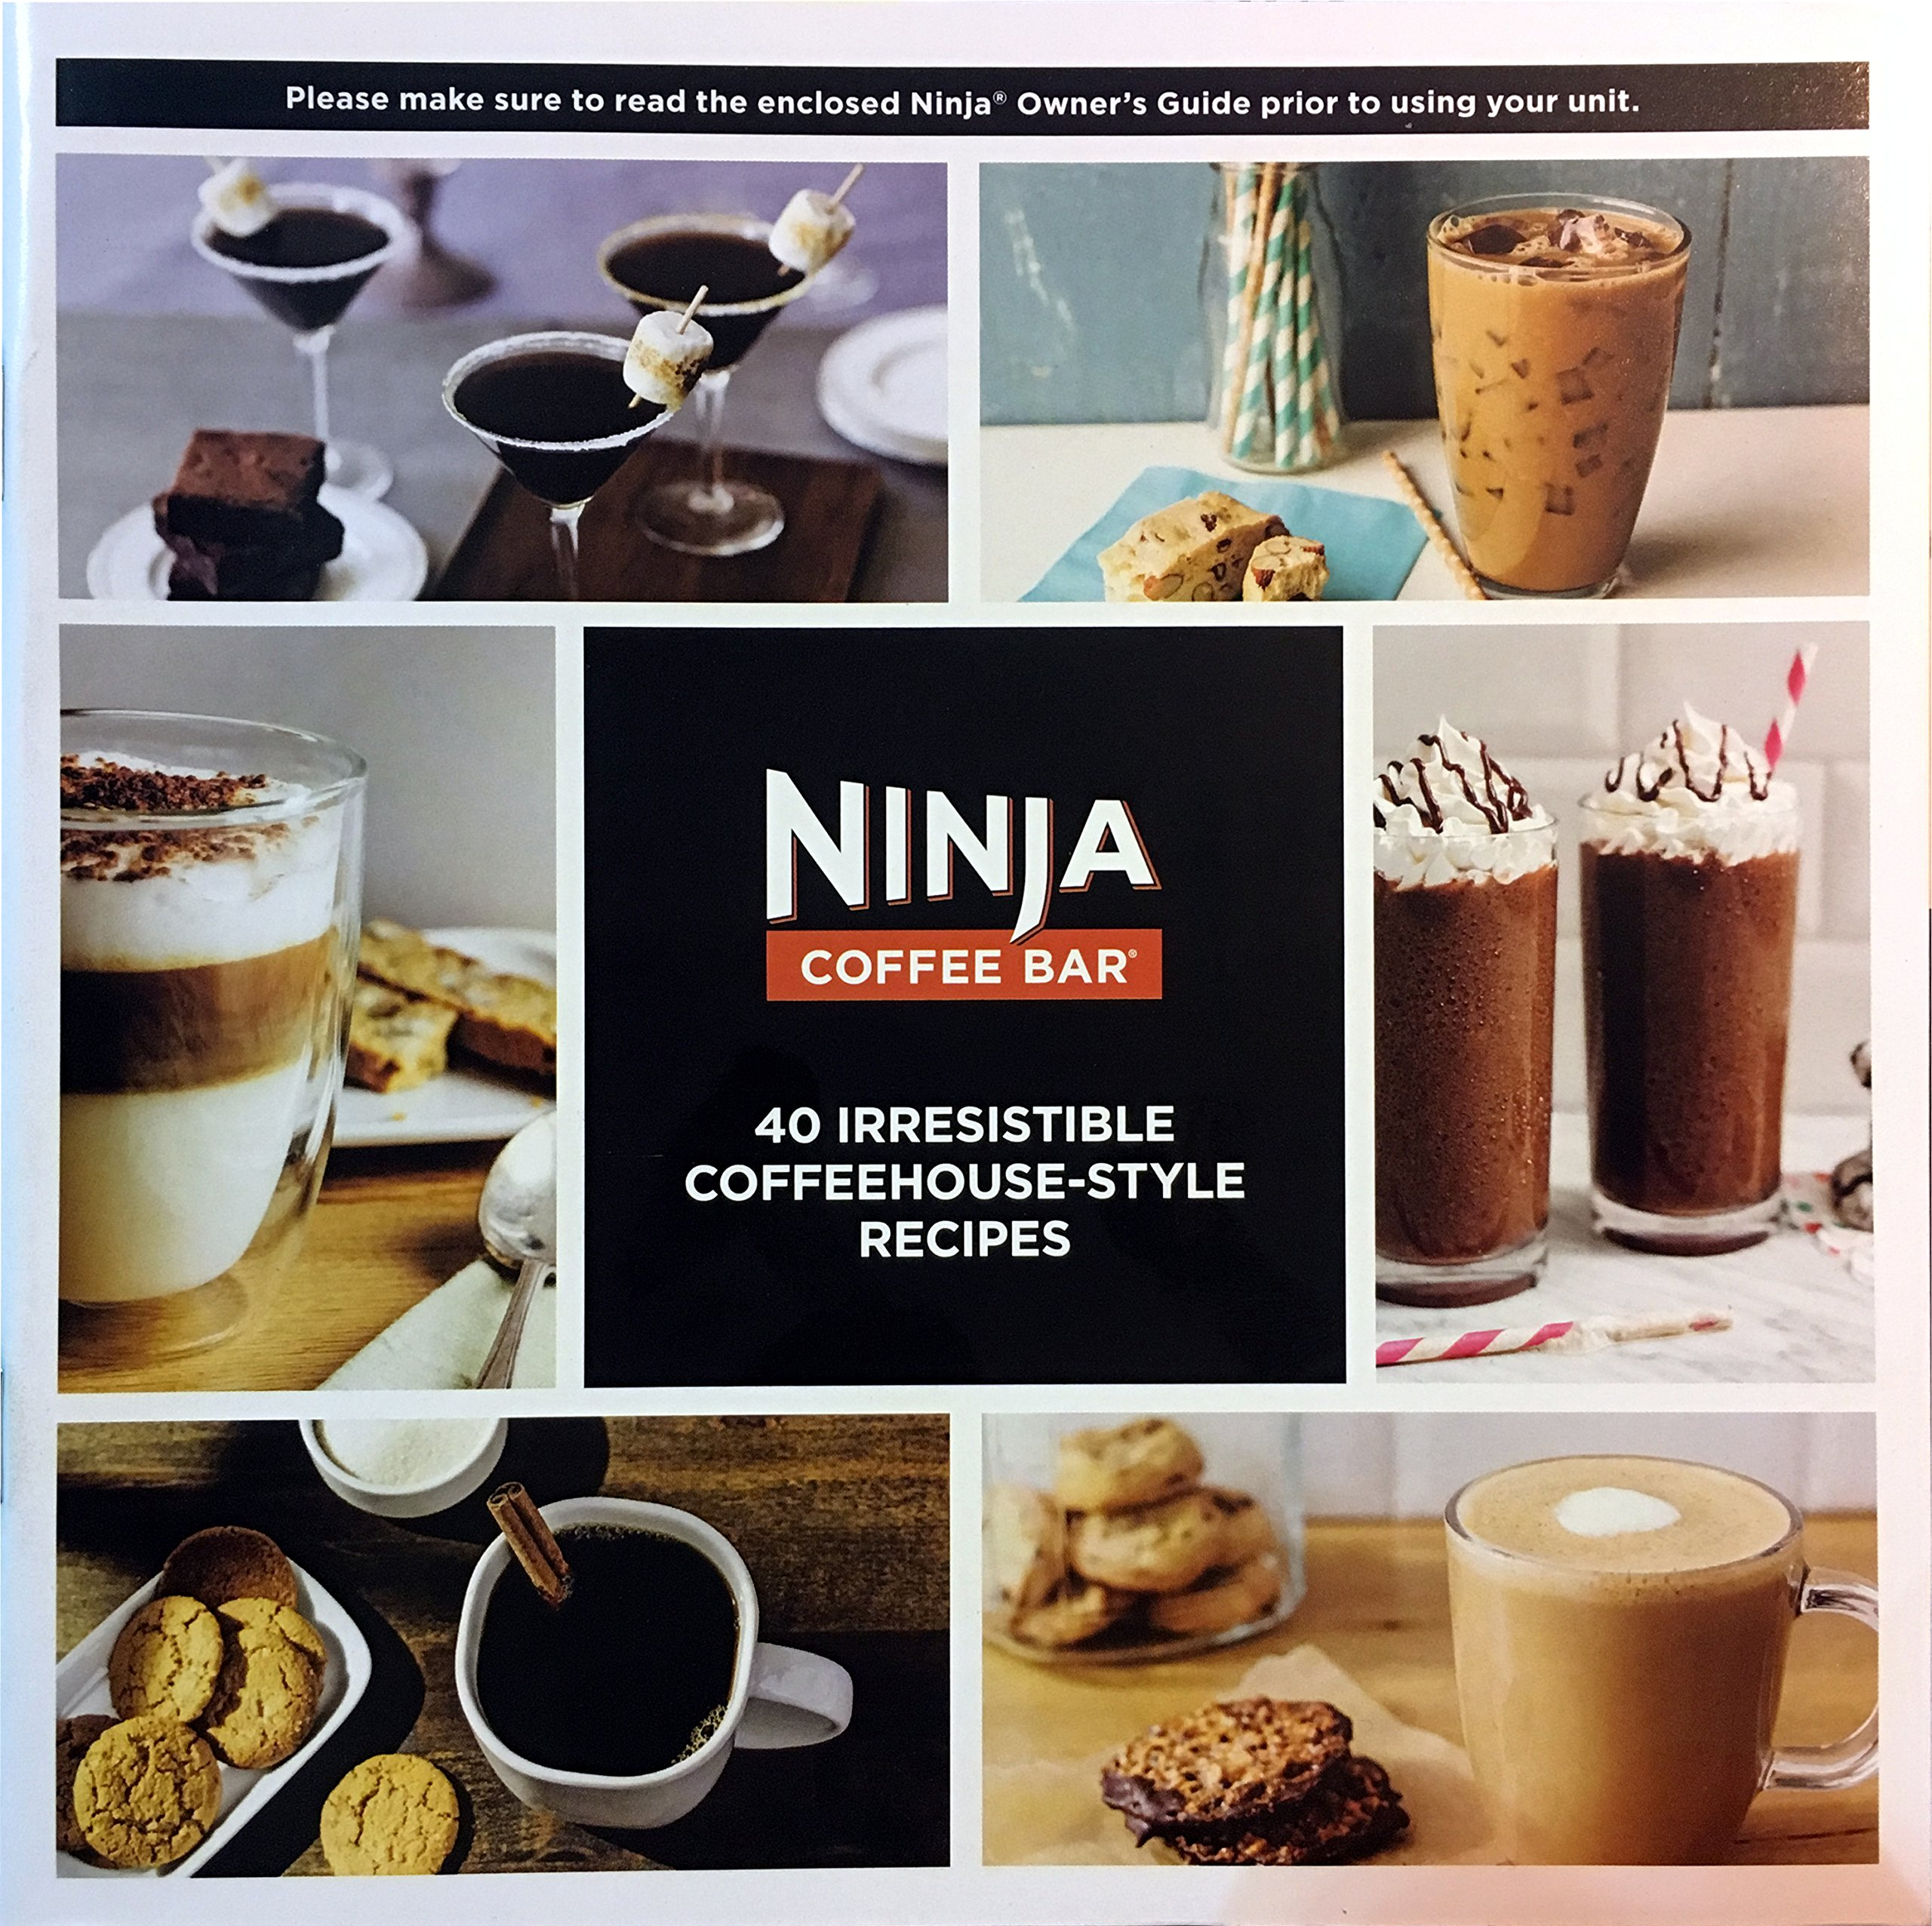 Ninja Coffee Bar Single-Serve System (CF111), Melitta Cone Coffee Filters, Natural Brown, No. 4, 100-Count Filters & Zonoz One-Tablespoon Plastic Clever Scoop (Bundle) by NinjaShark (Image #5)